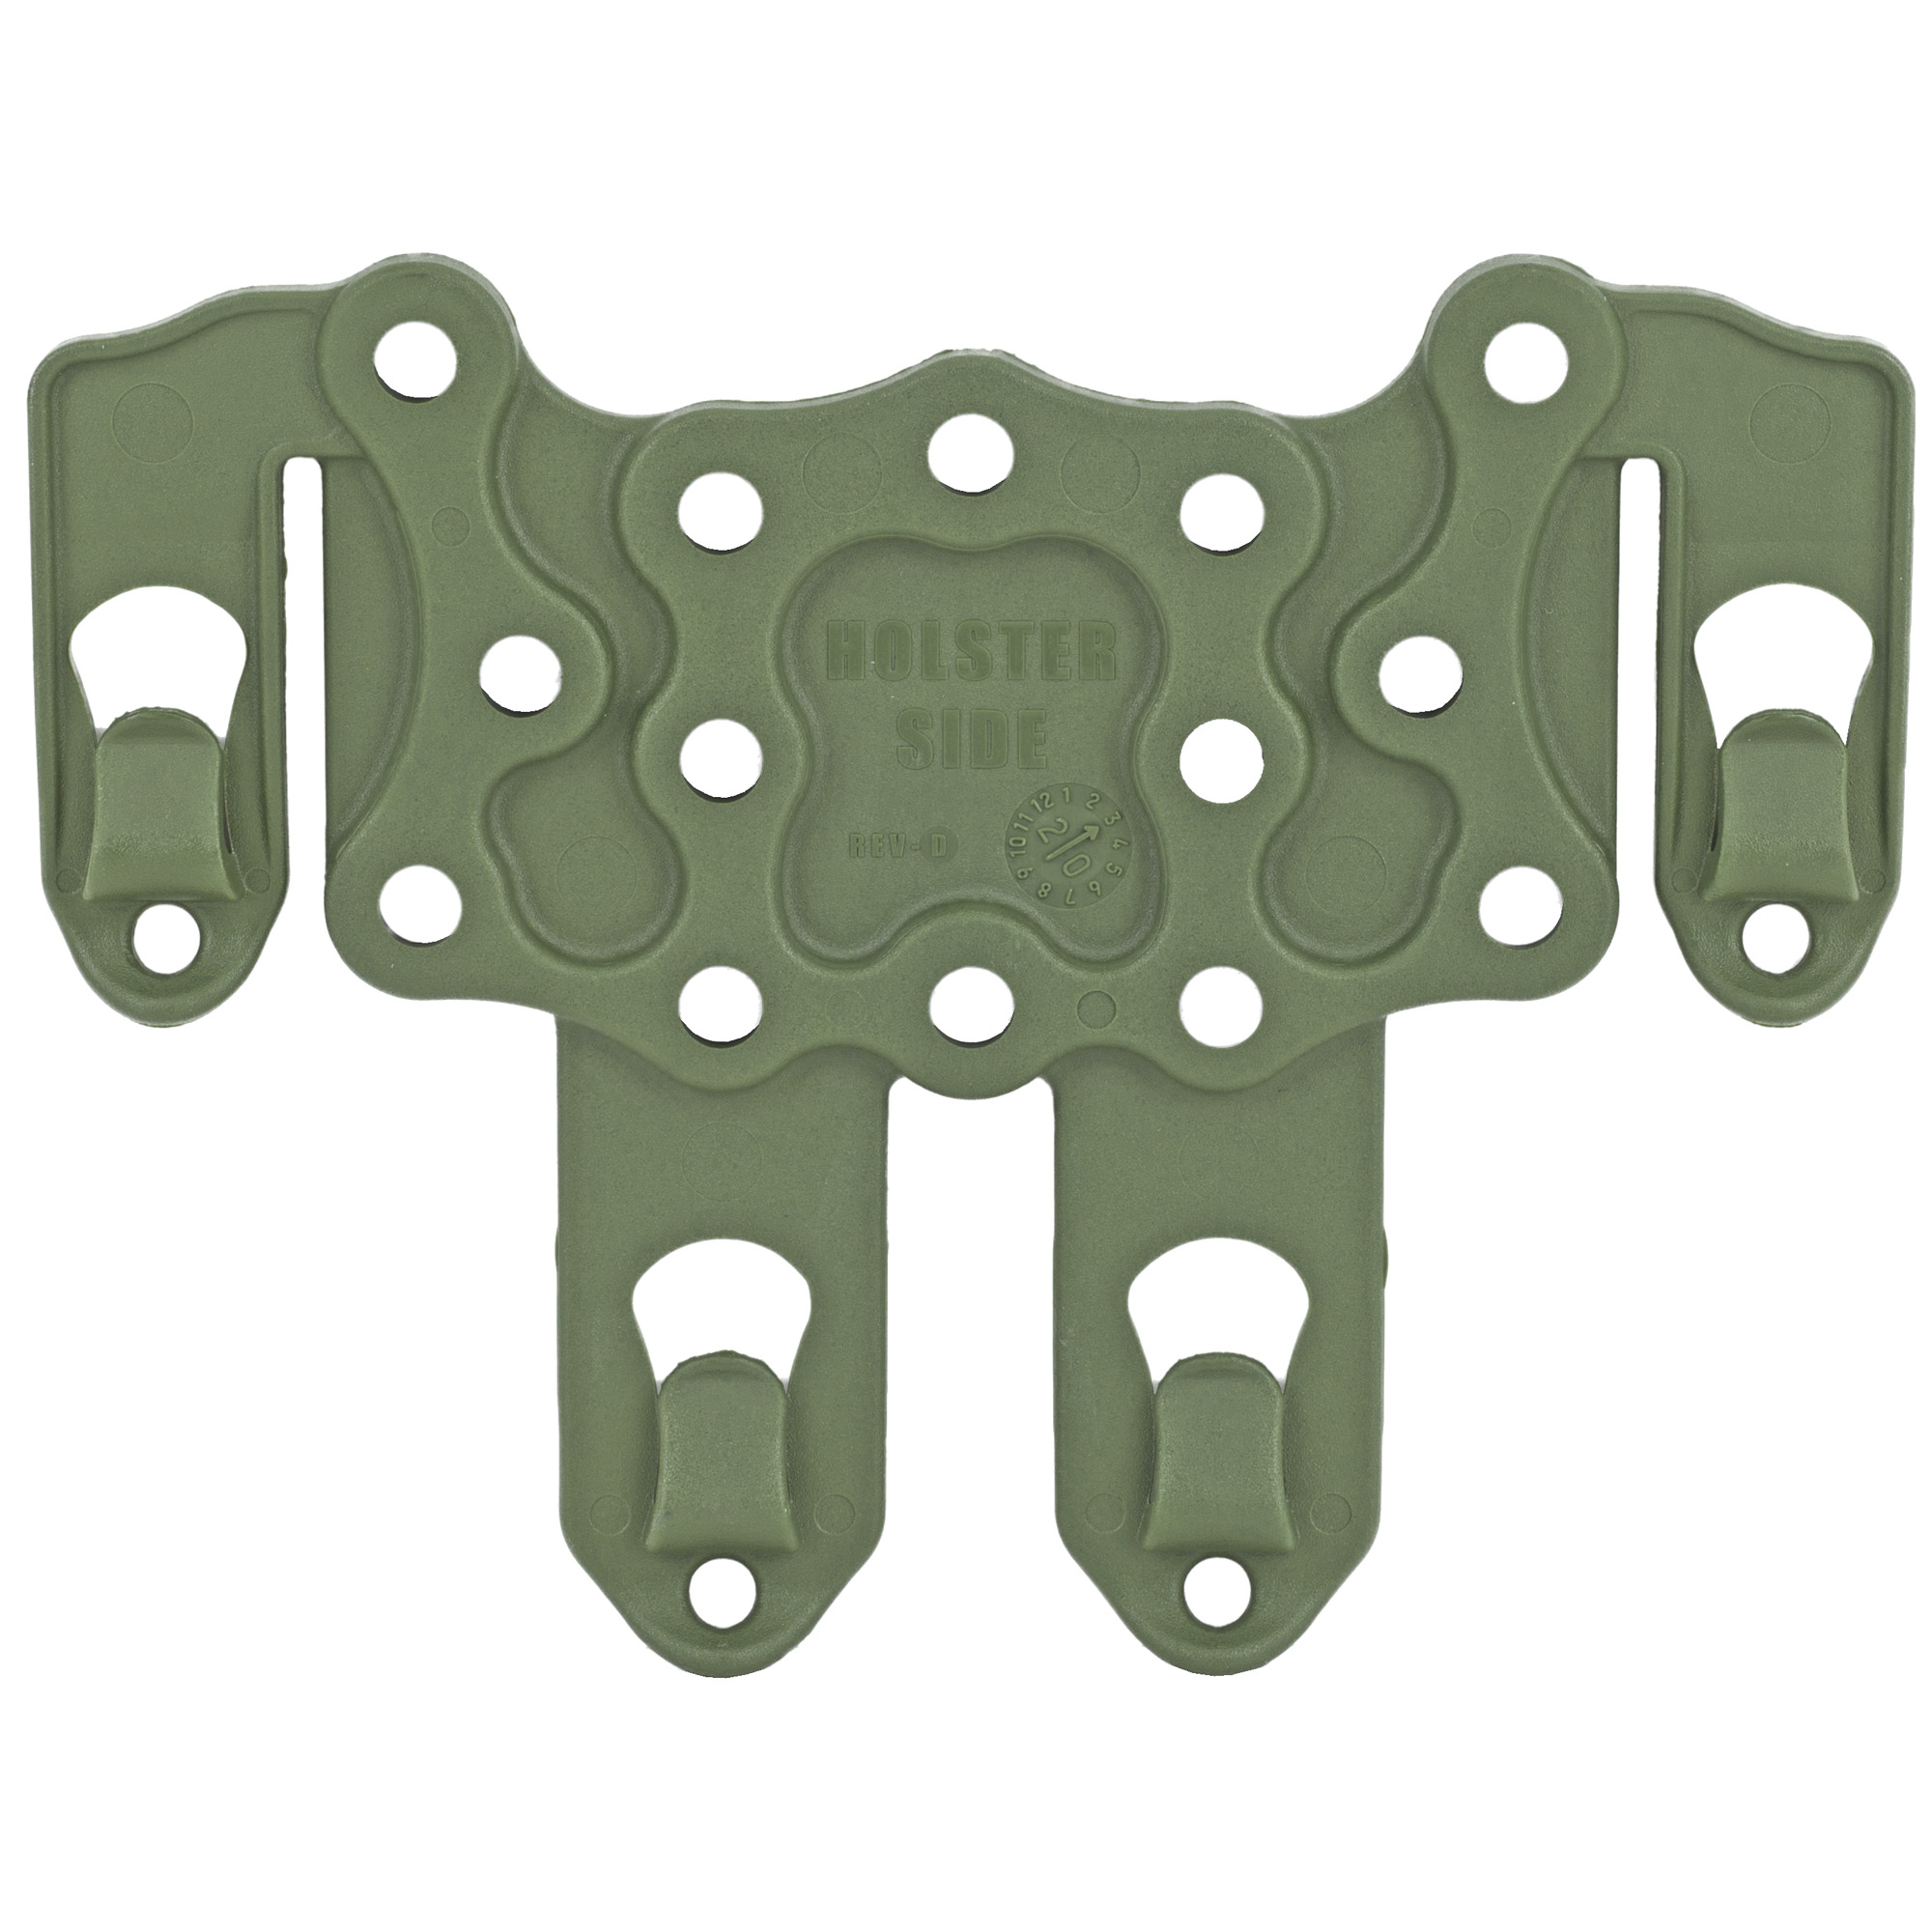 """Designed to fit any BLACKHAWK(R) injection-molded concealment holster at any angle"""" the S.T.R.I.K.E.(R) Platform can be mounted to any S.T.R.I.K.E.(R) or PALS/MOLLE web system. Holds rail-mounted accessories such as mag cases"""" light cases"""" knife sheaths"""" etc."""